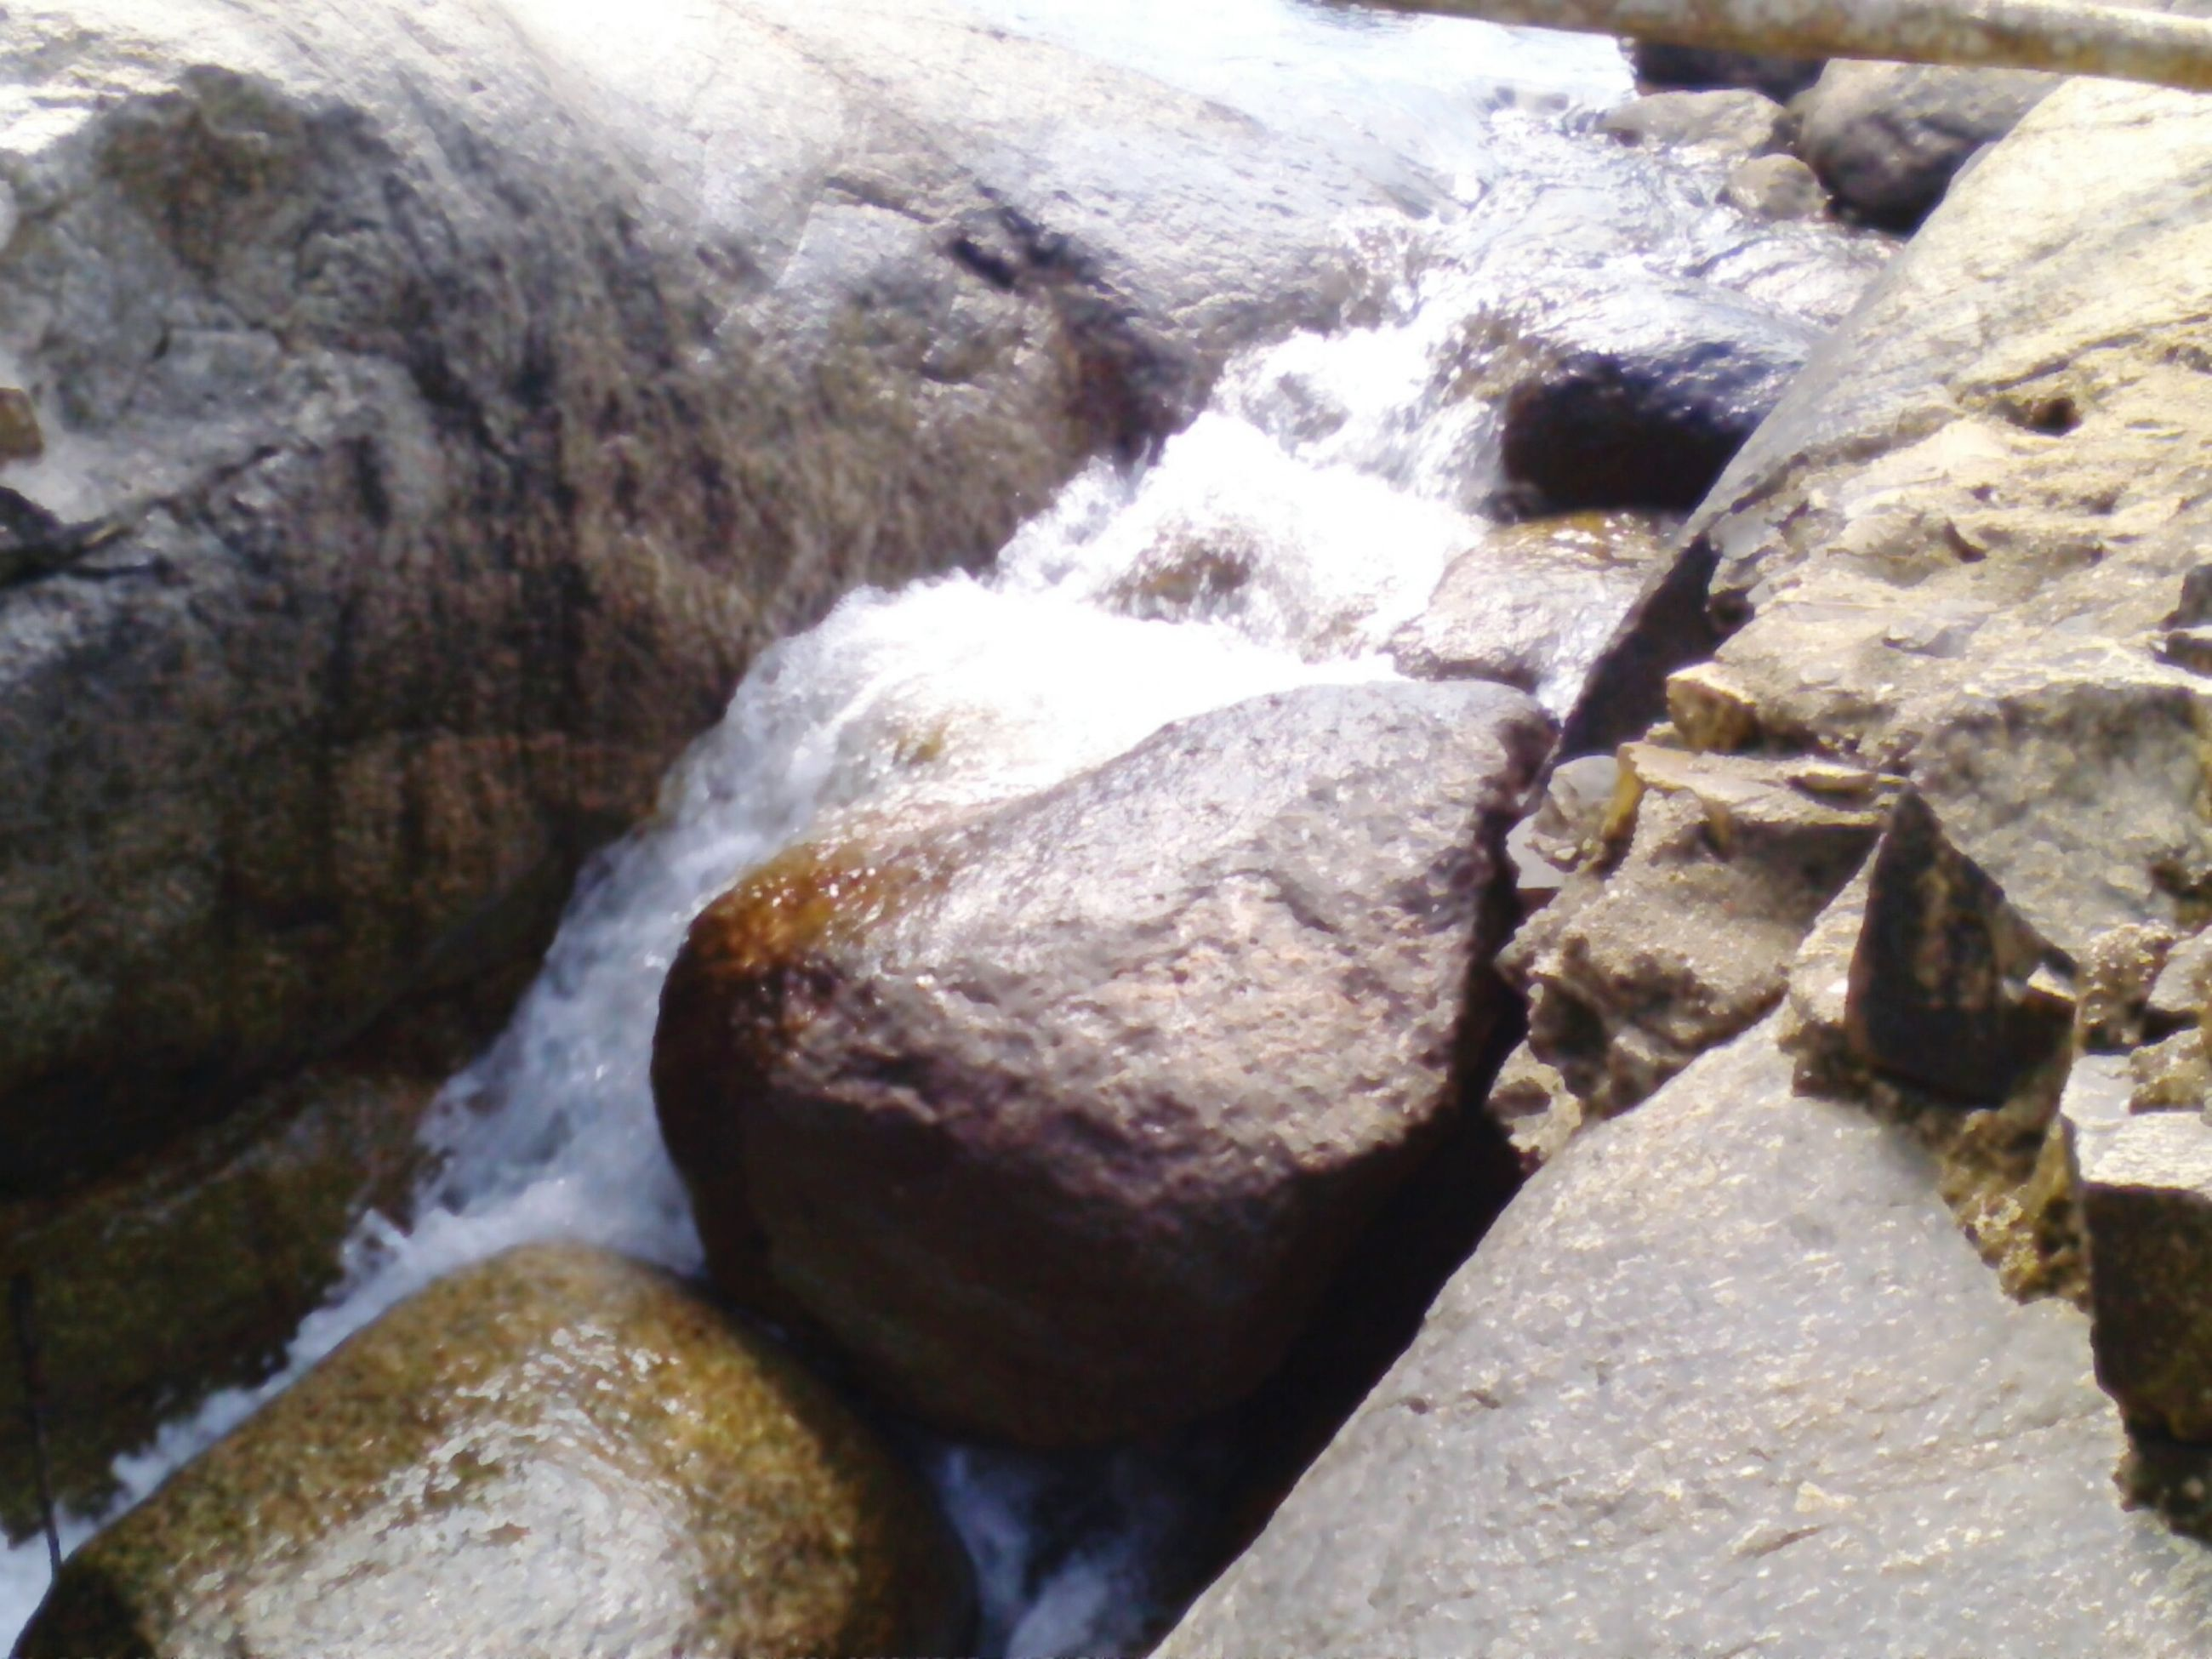 rock - object, water, flowing water, motion, nature, rock, stone - object, flowing, rock formation, beauty in nature, stone, day, waterfall, outdoors, stream, surf, textured, no people, close-up, splashing